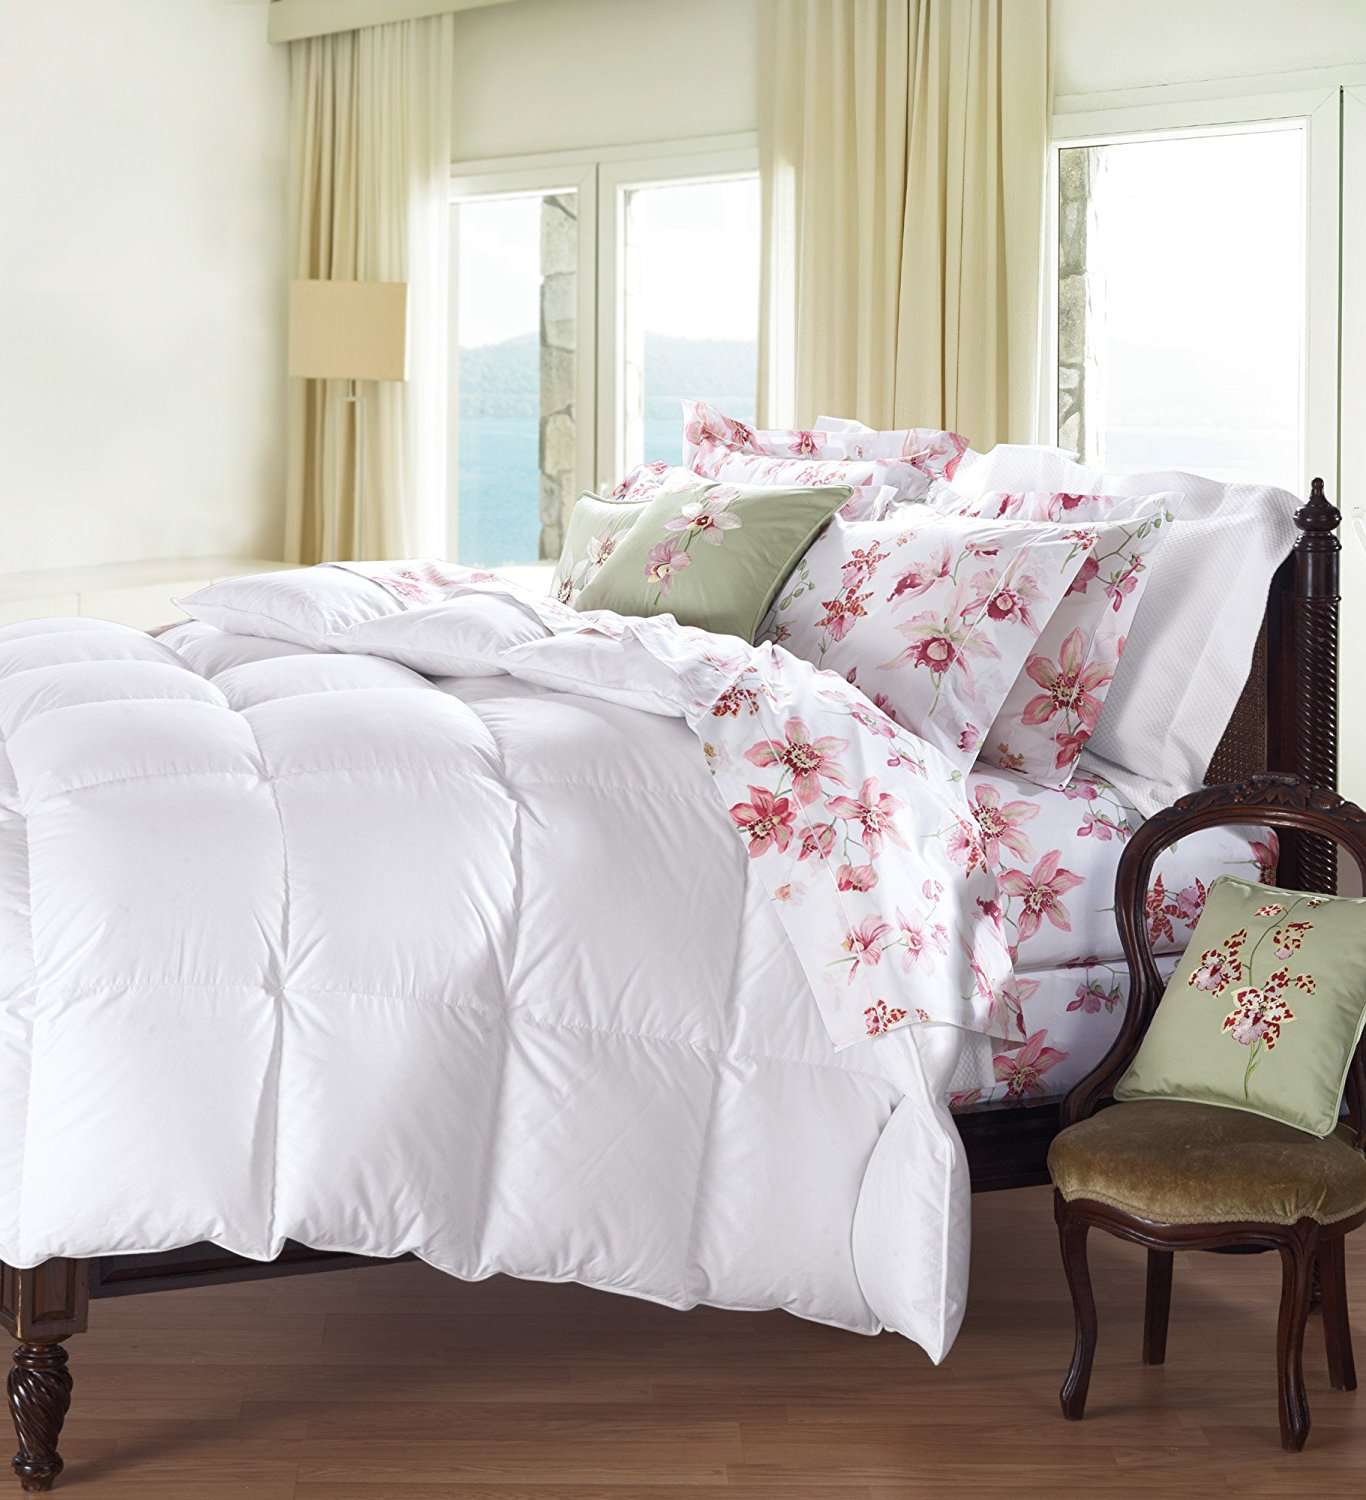 Feeling Comfortable With 800 Fill Power Down Comforter